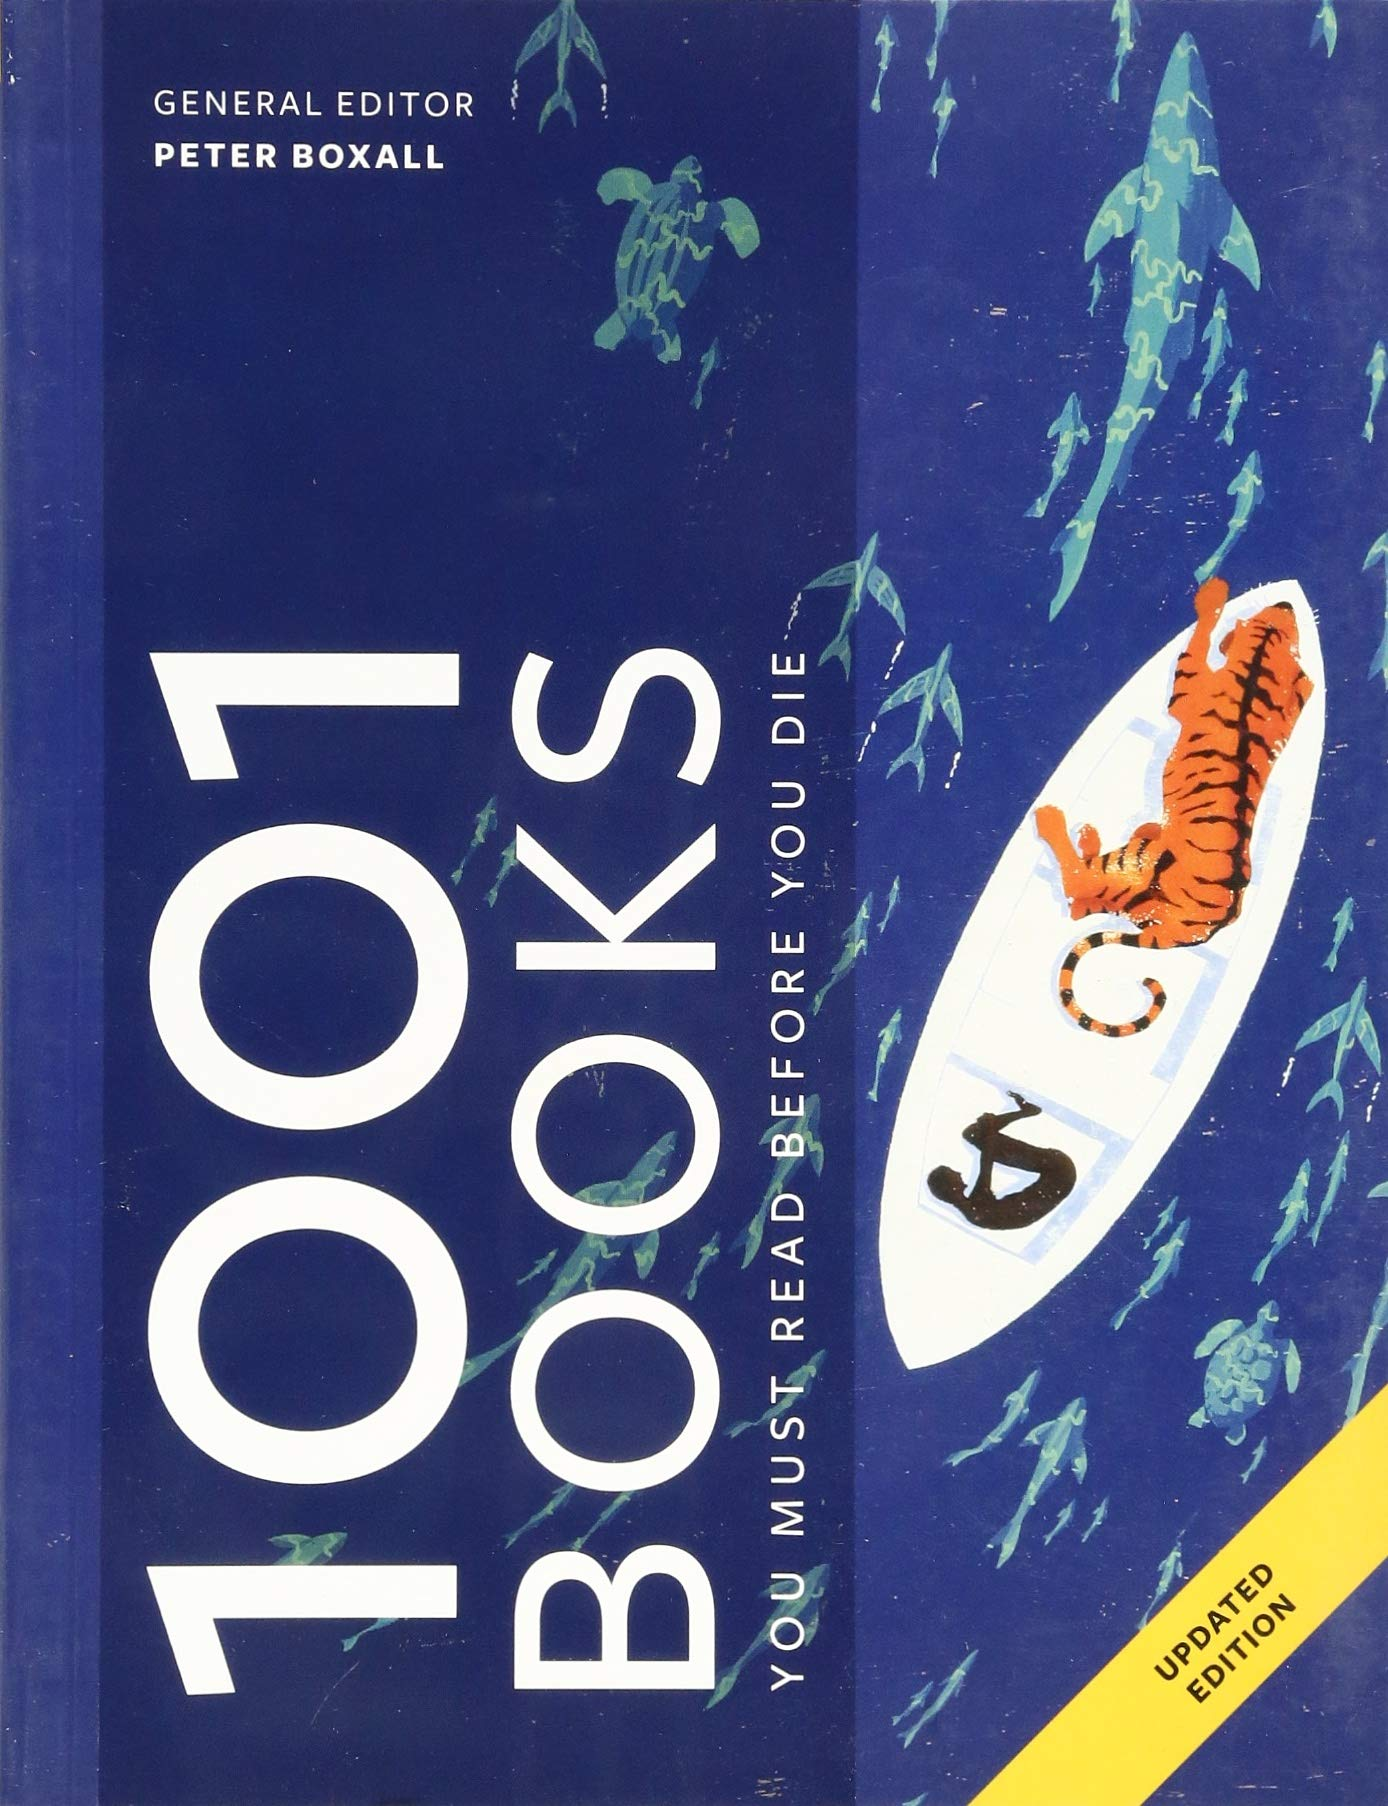 20 Books You Must Read Before You Die  Boxall, Peter Amazon.de ...